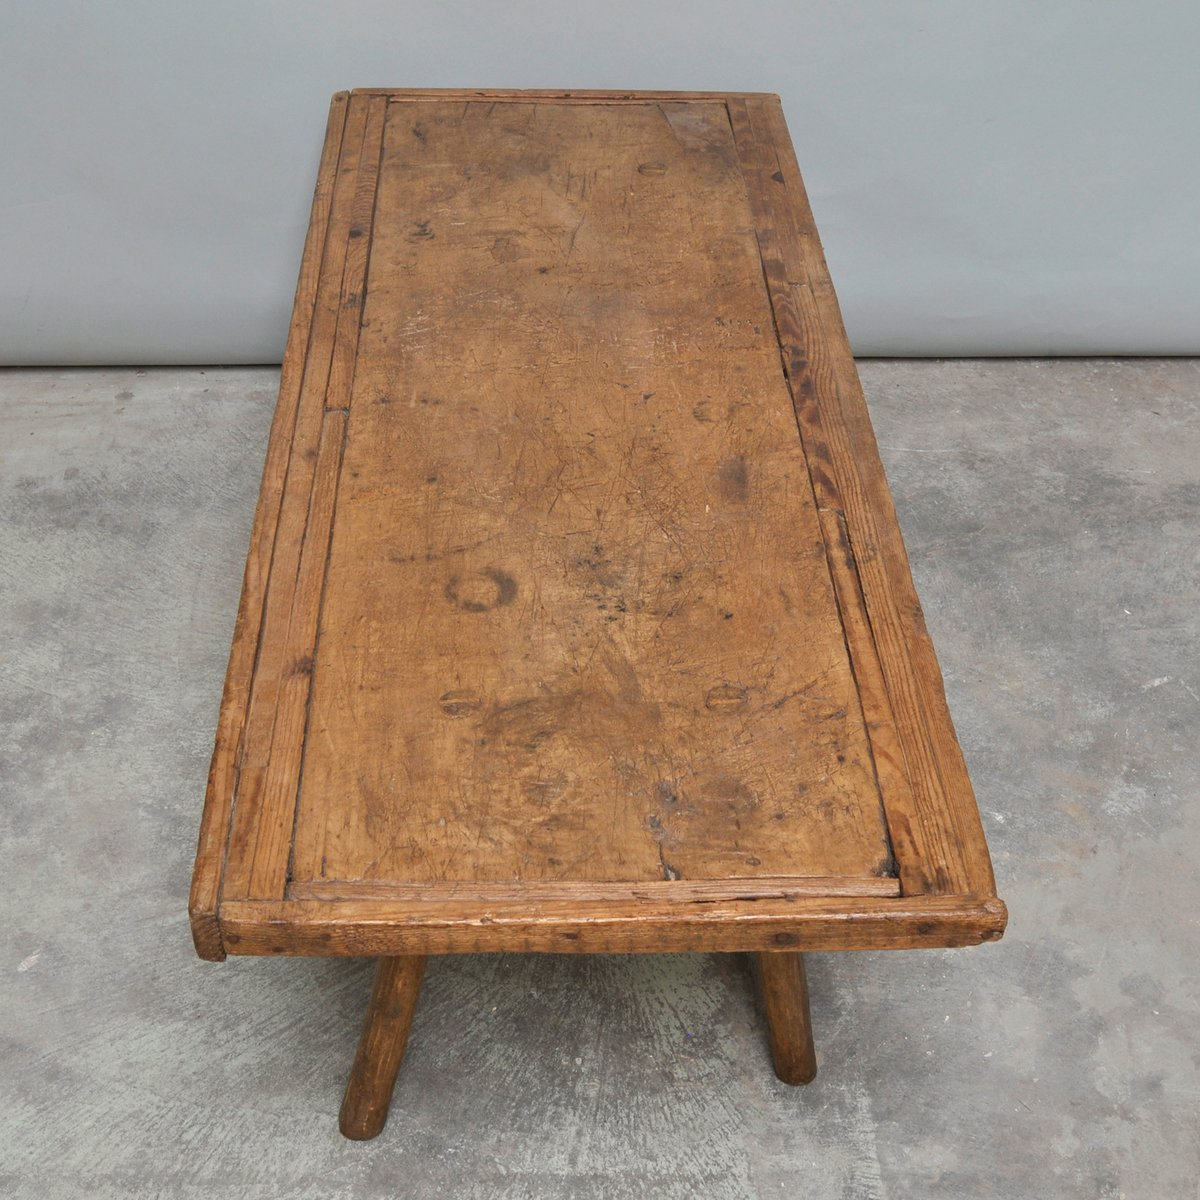 Vintage Oak Butcher S Block Coffee Table Or Bench 1930s 6 Price 618 00 Regular 738